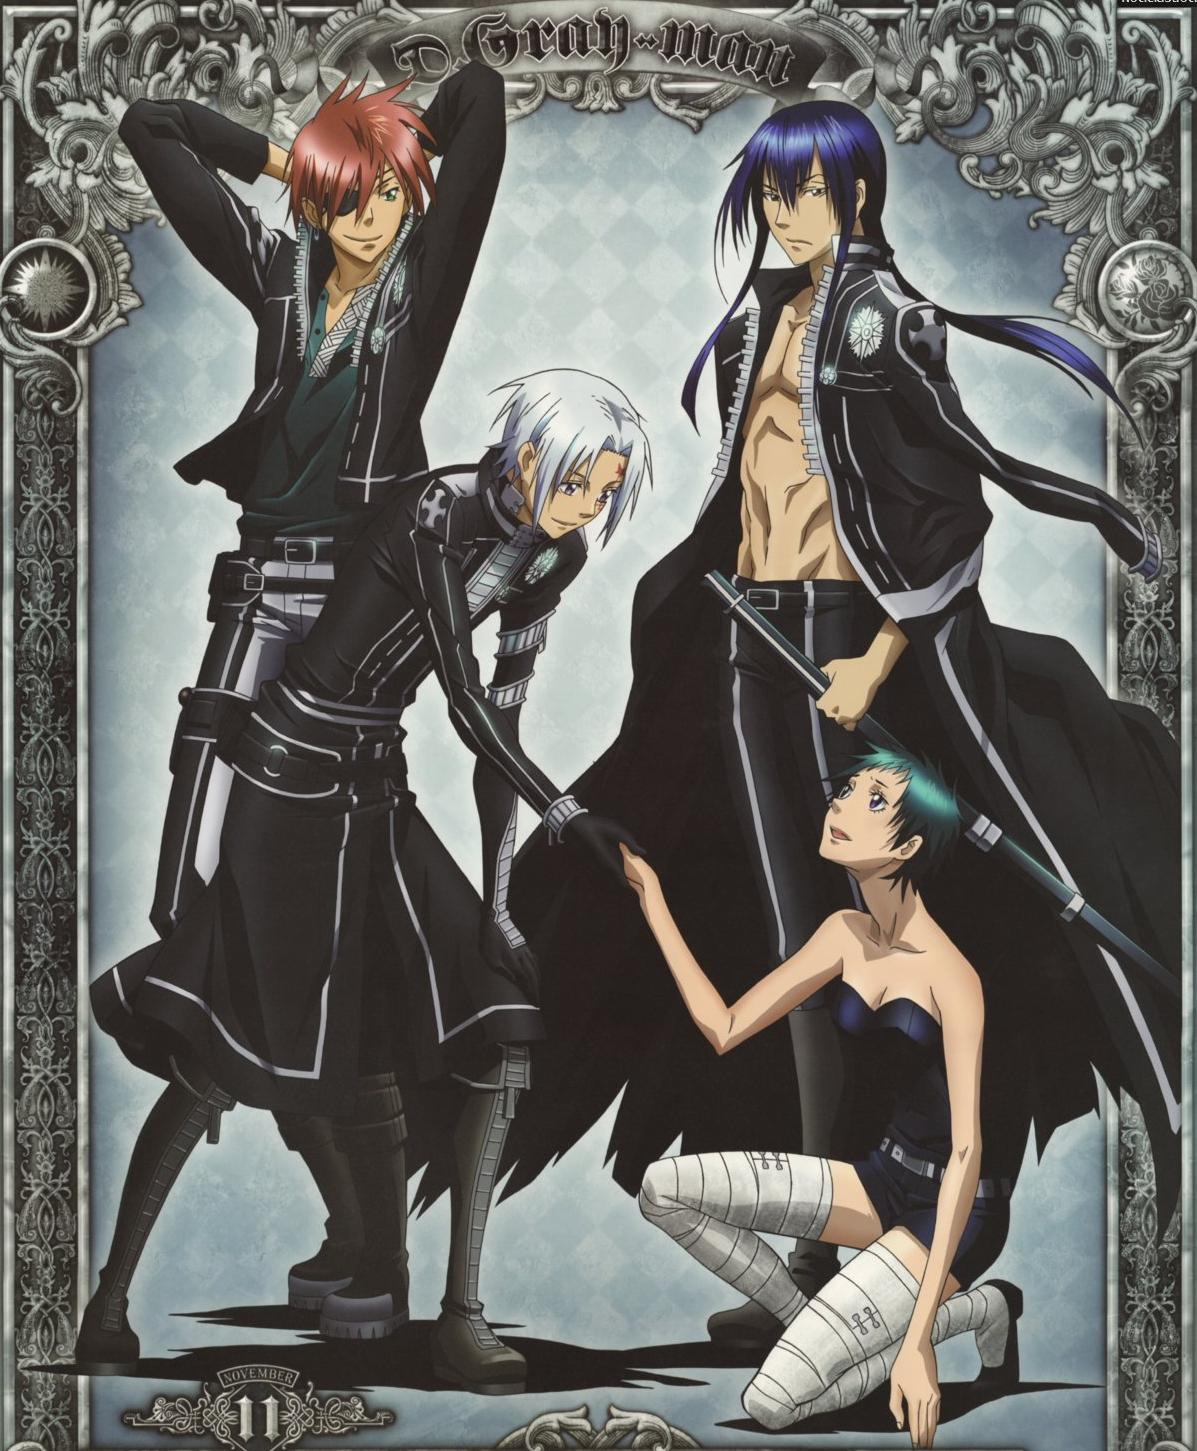 D gray man d gray man photo 27649270 fanpop - D gray man images ...